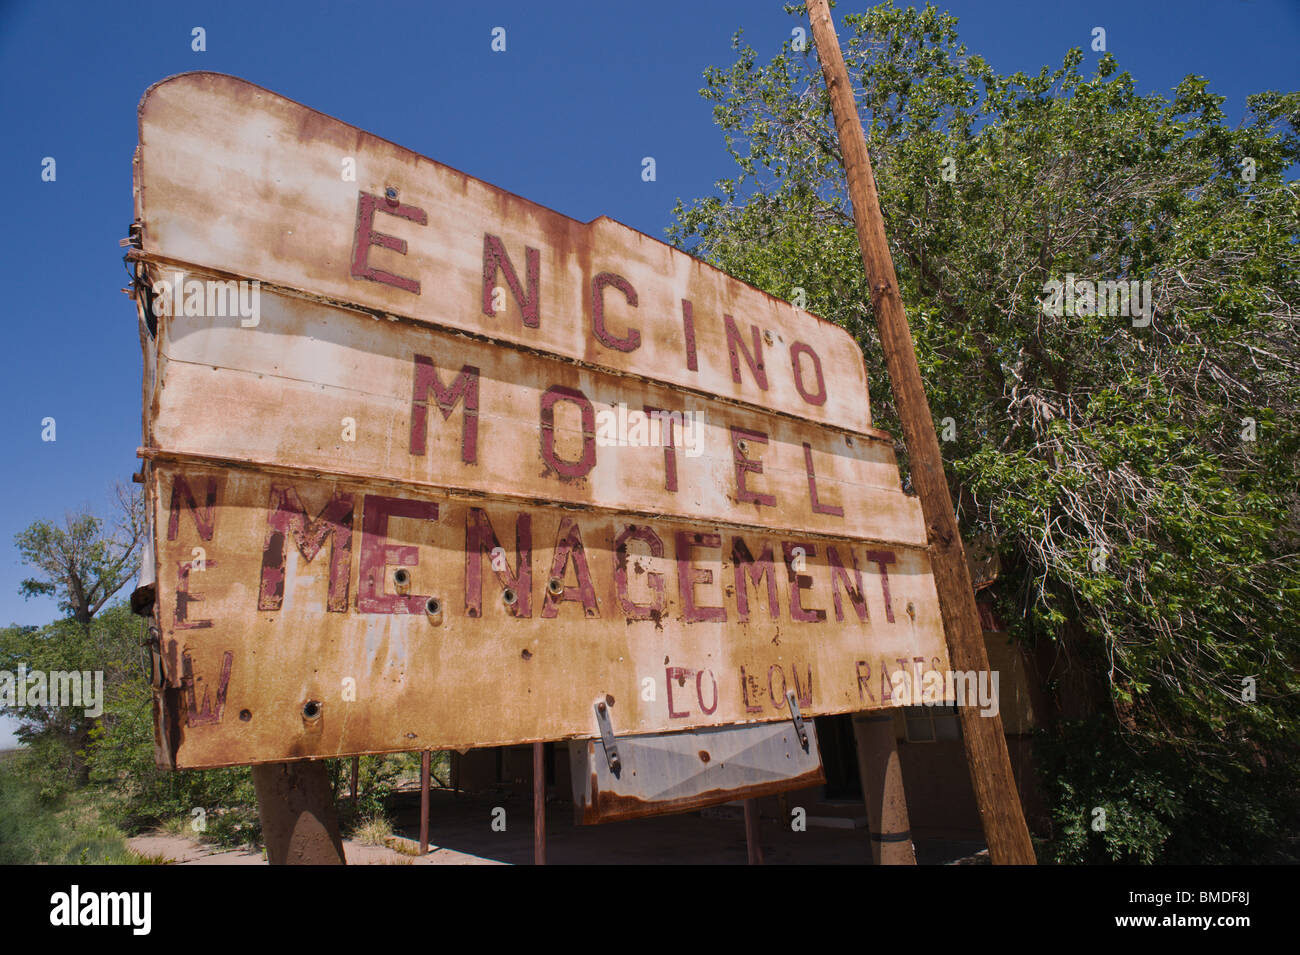 The dilapidated Encino Motel, once under New 'Menagement' and had lo low rates, now falls into ruin in Encino, - Stock Image